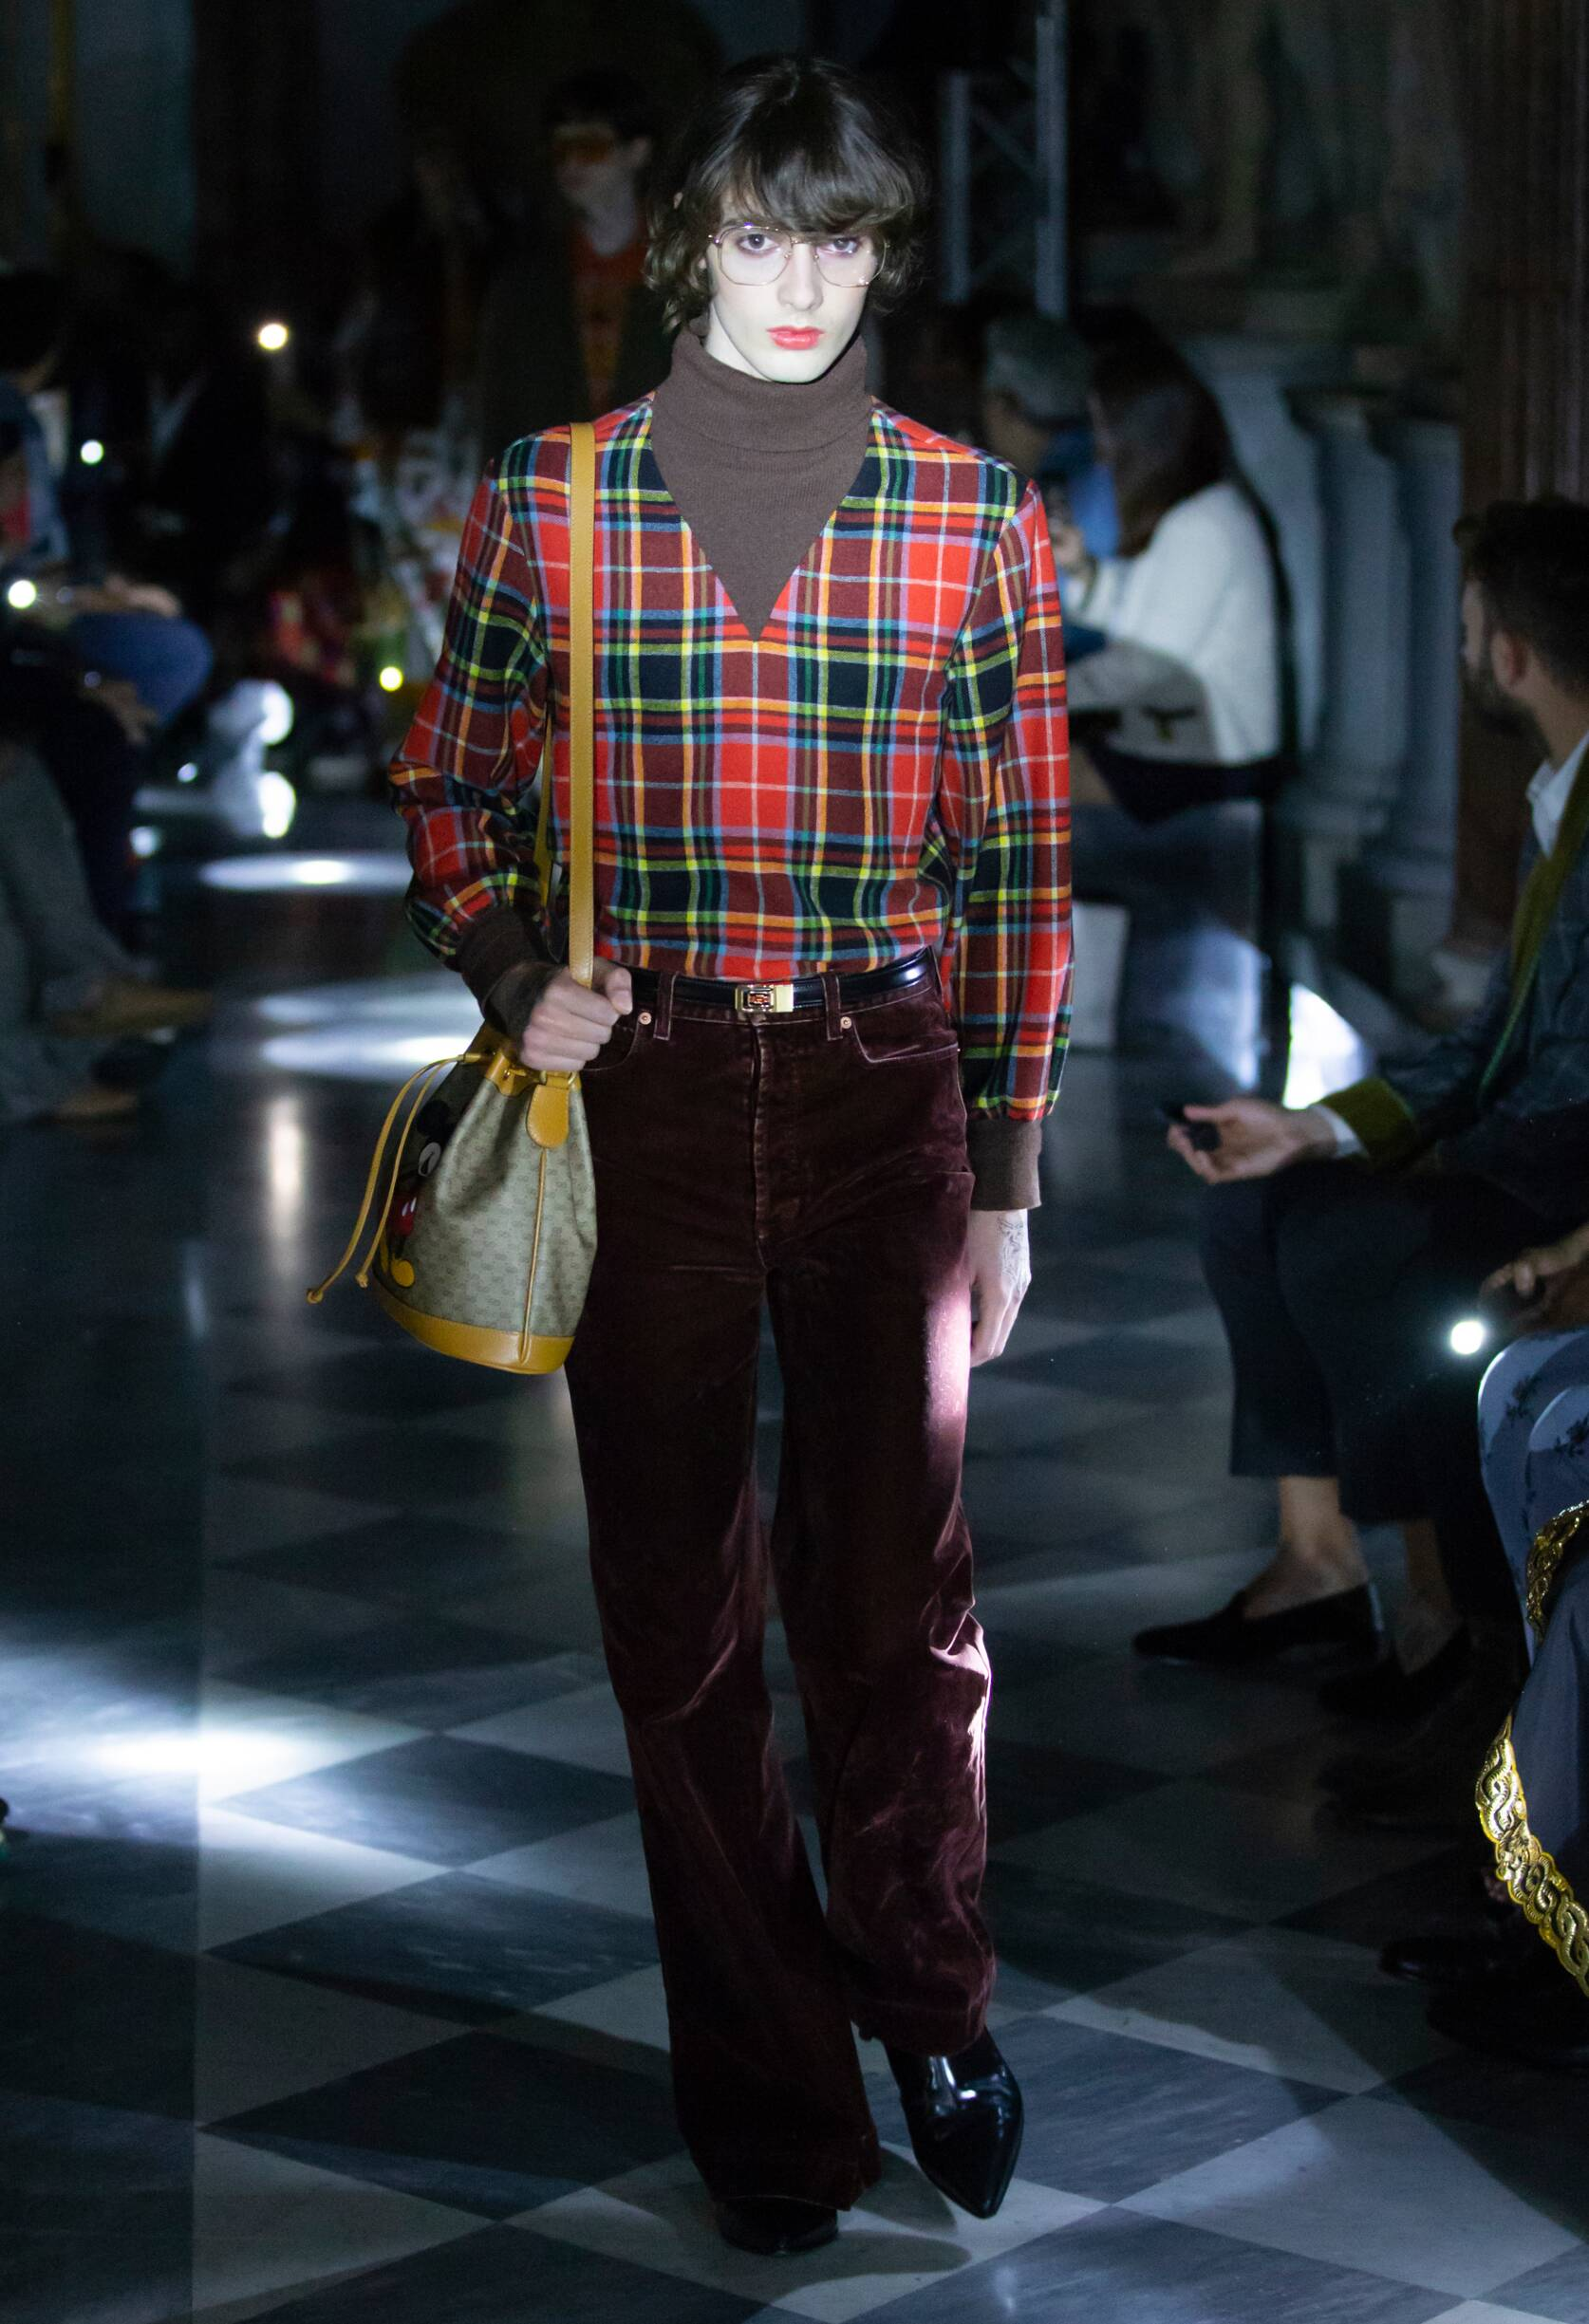 Gucci Cruise 2020 Collection Look 17 Rome